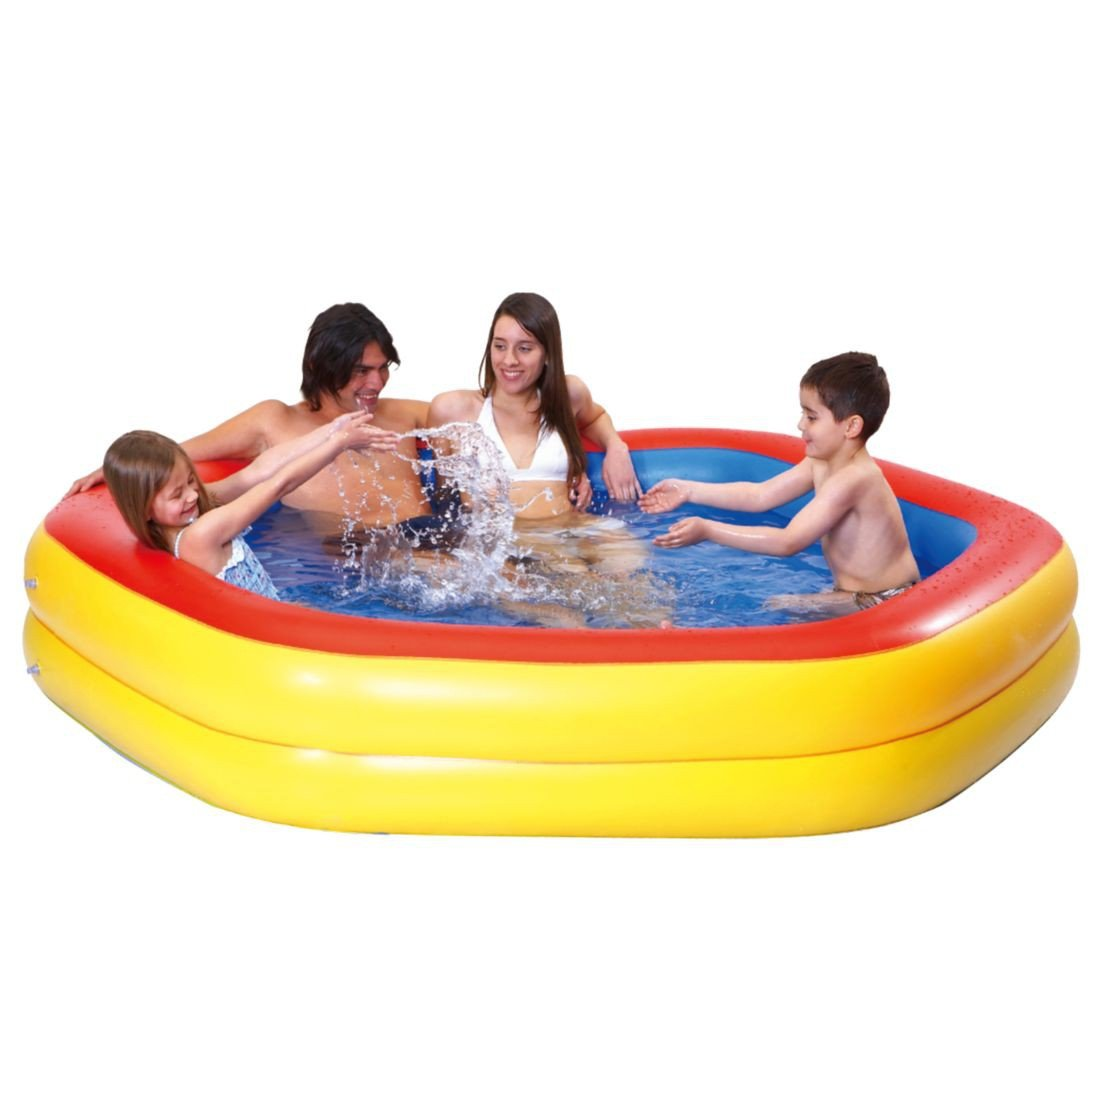 Jilong JL016015NPF -P77 - Piscina Inflable: Amazon.es: Jardín